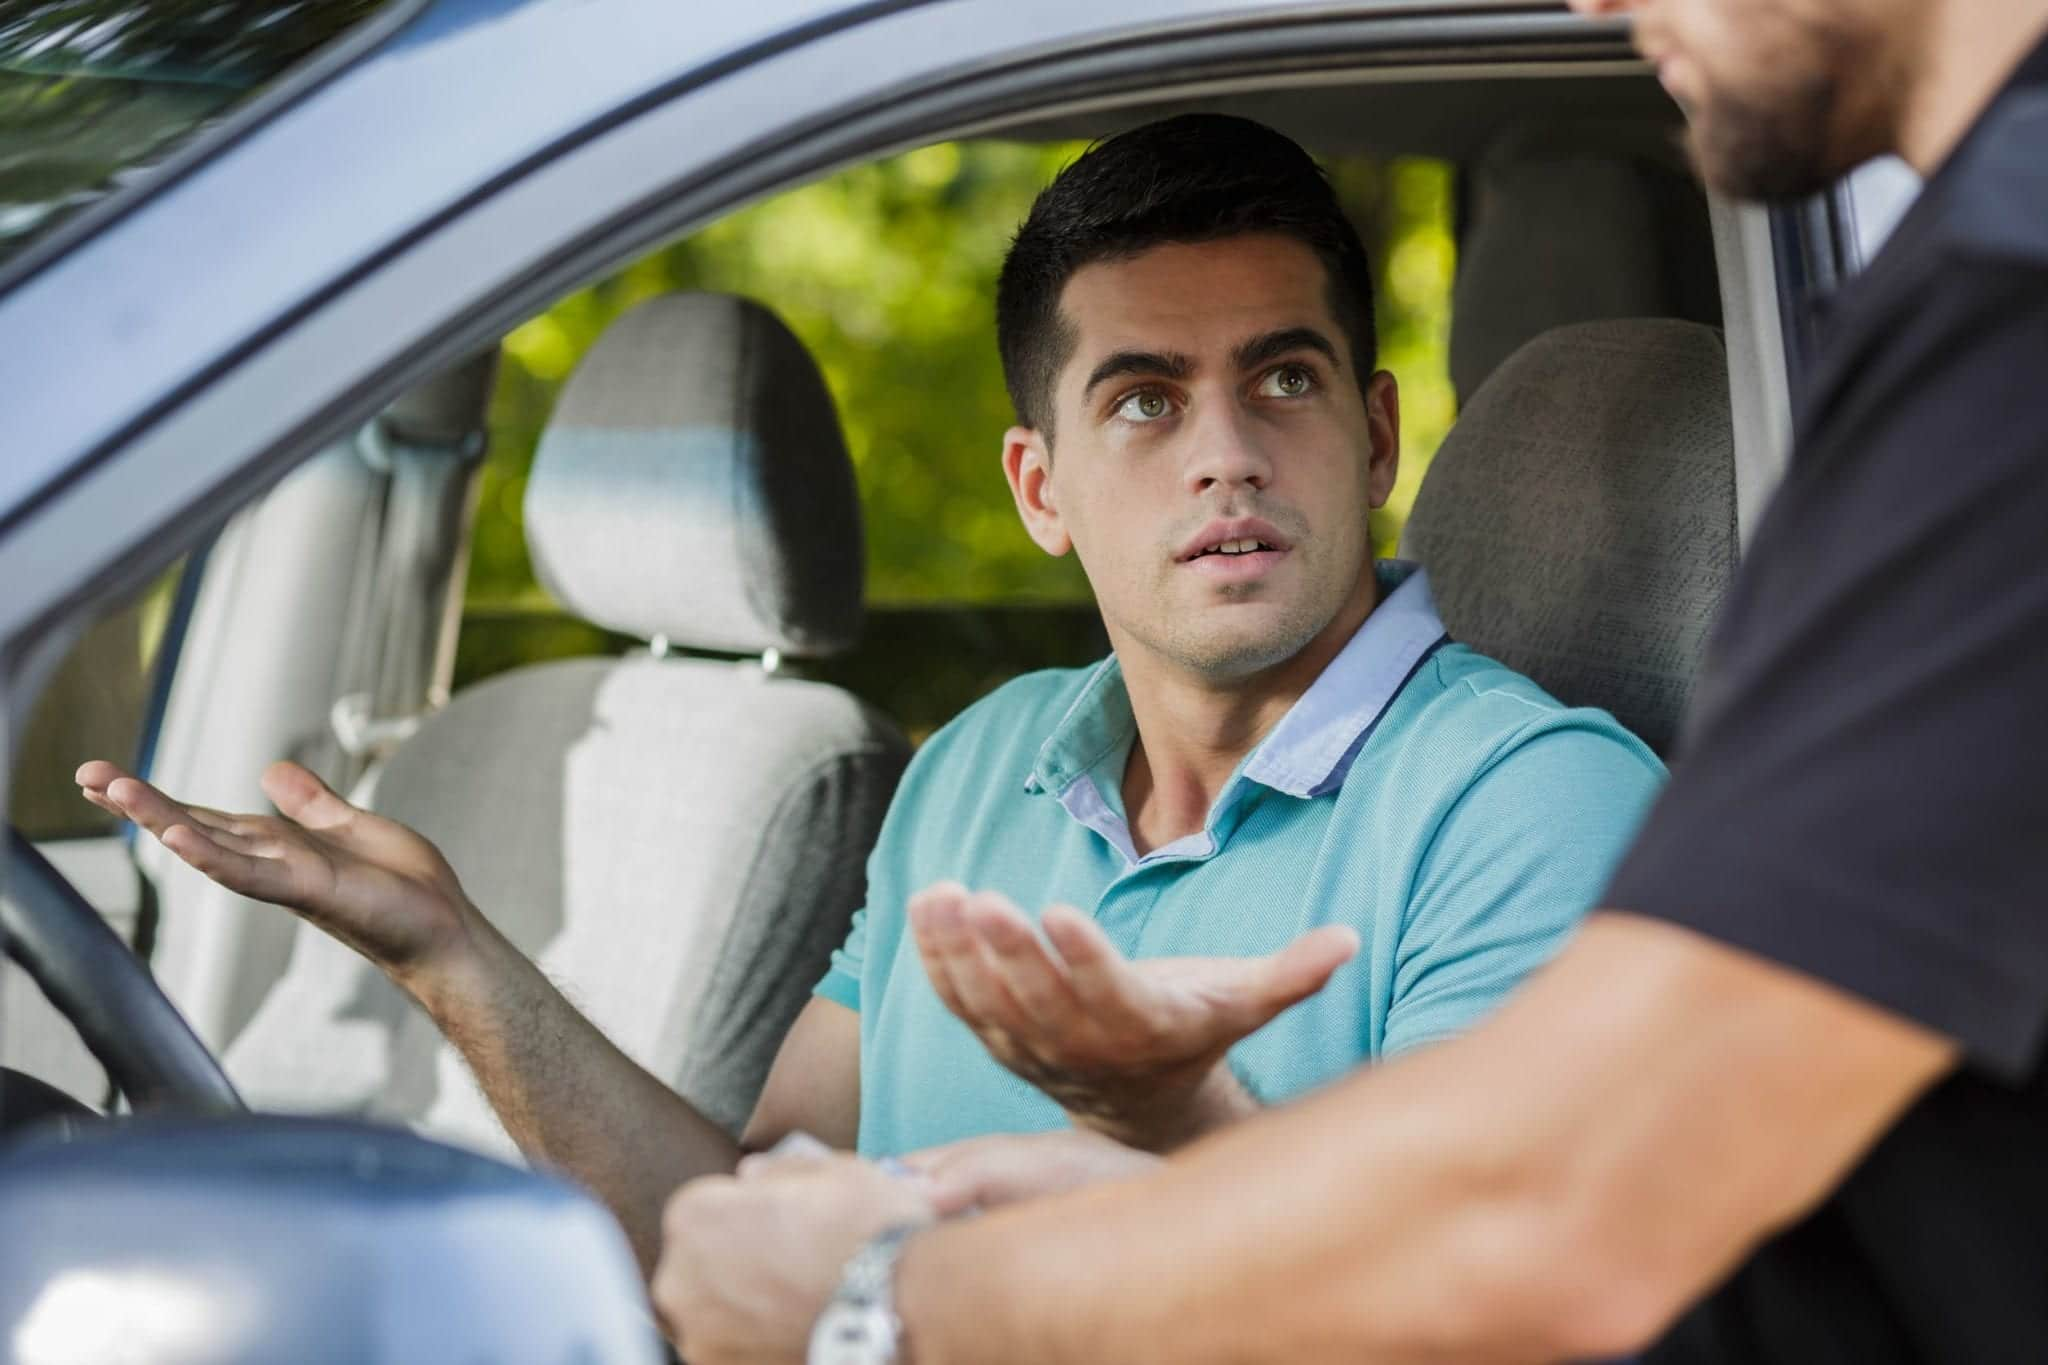 Defenses Against Unauthorized Use of a Motor Vehicle in Texas